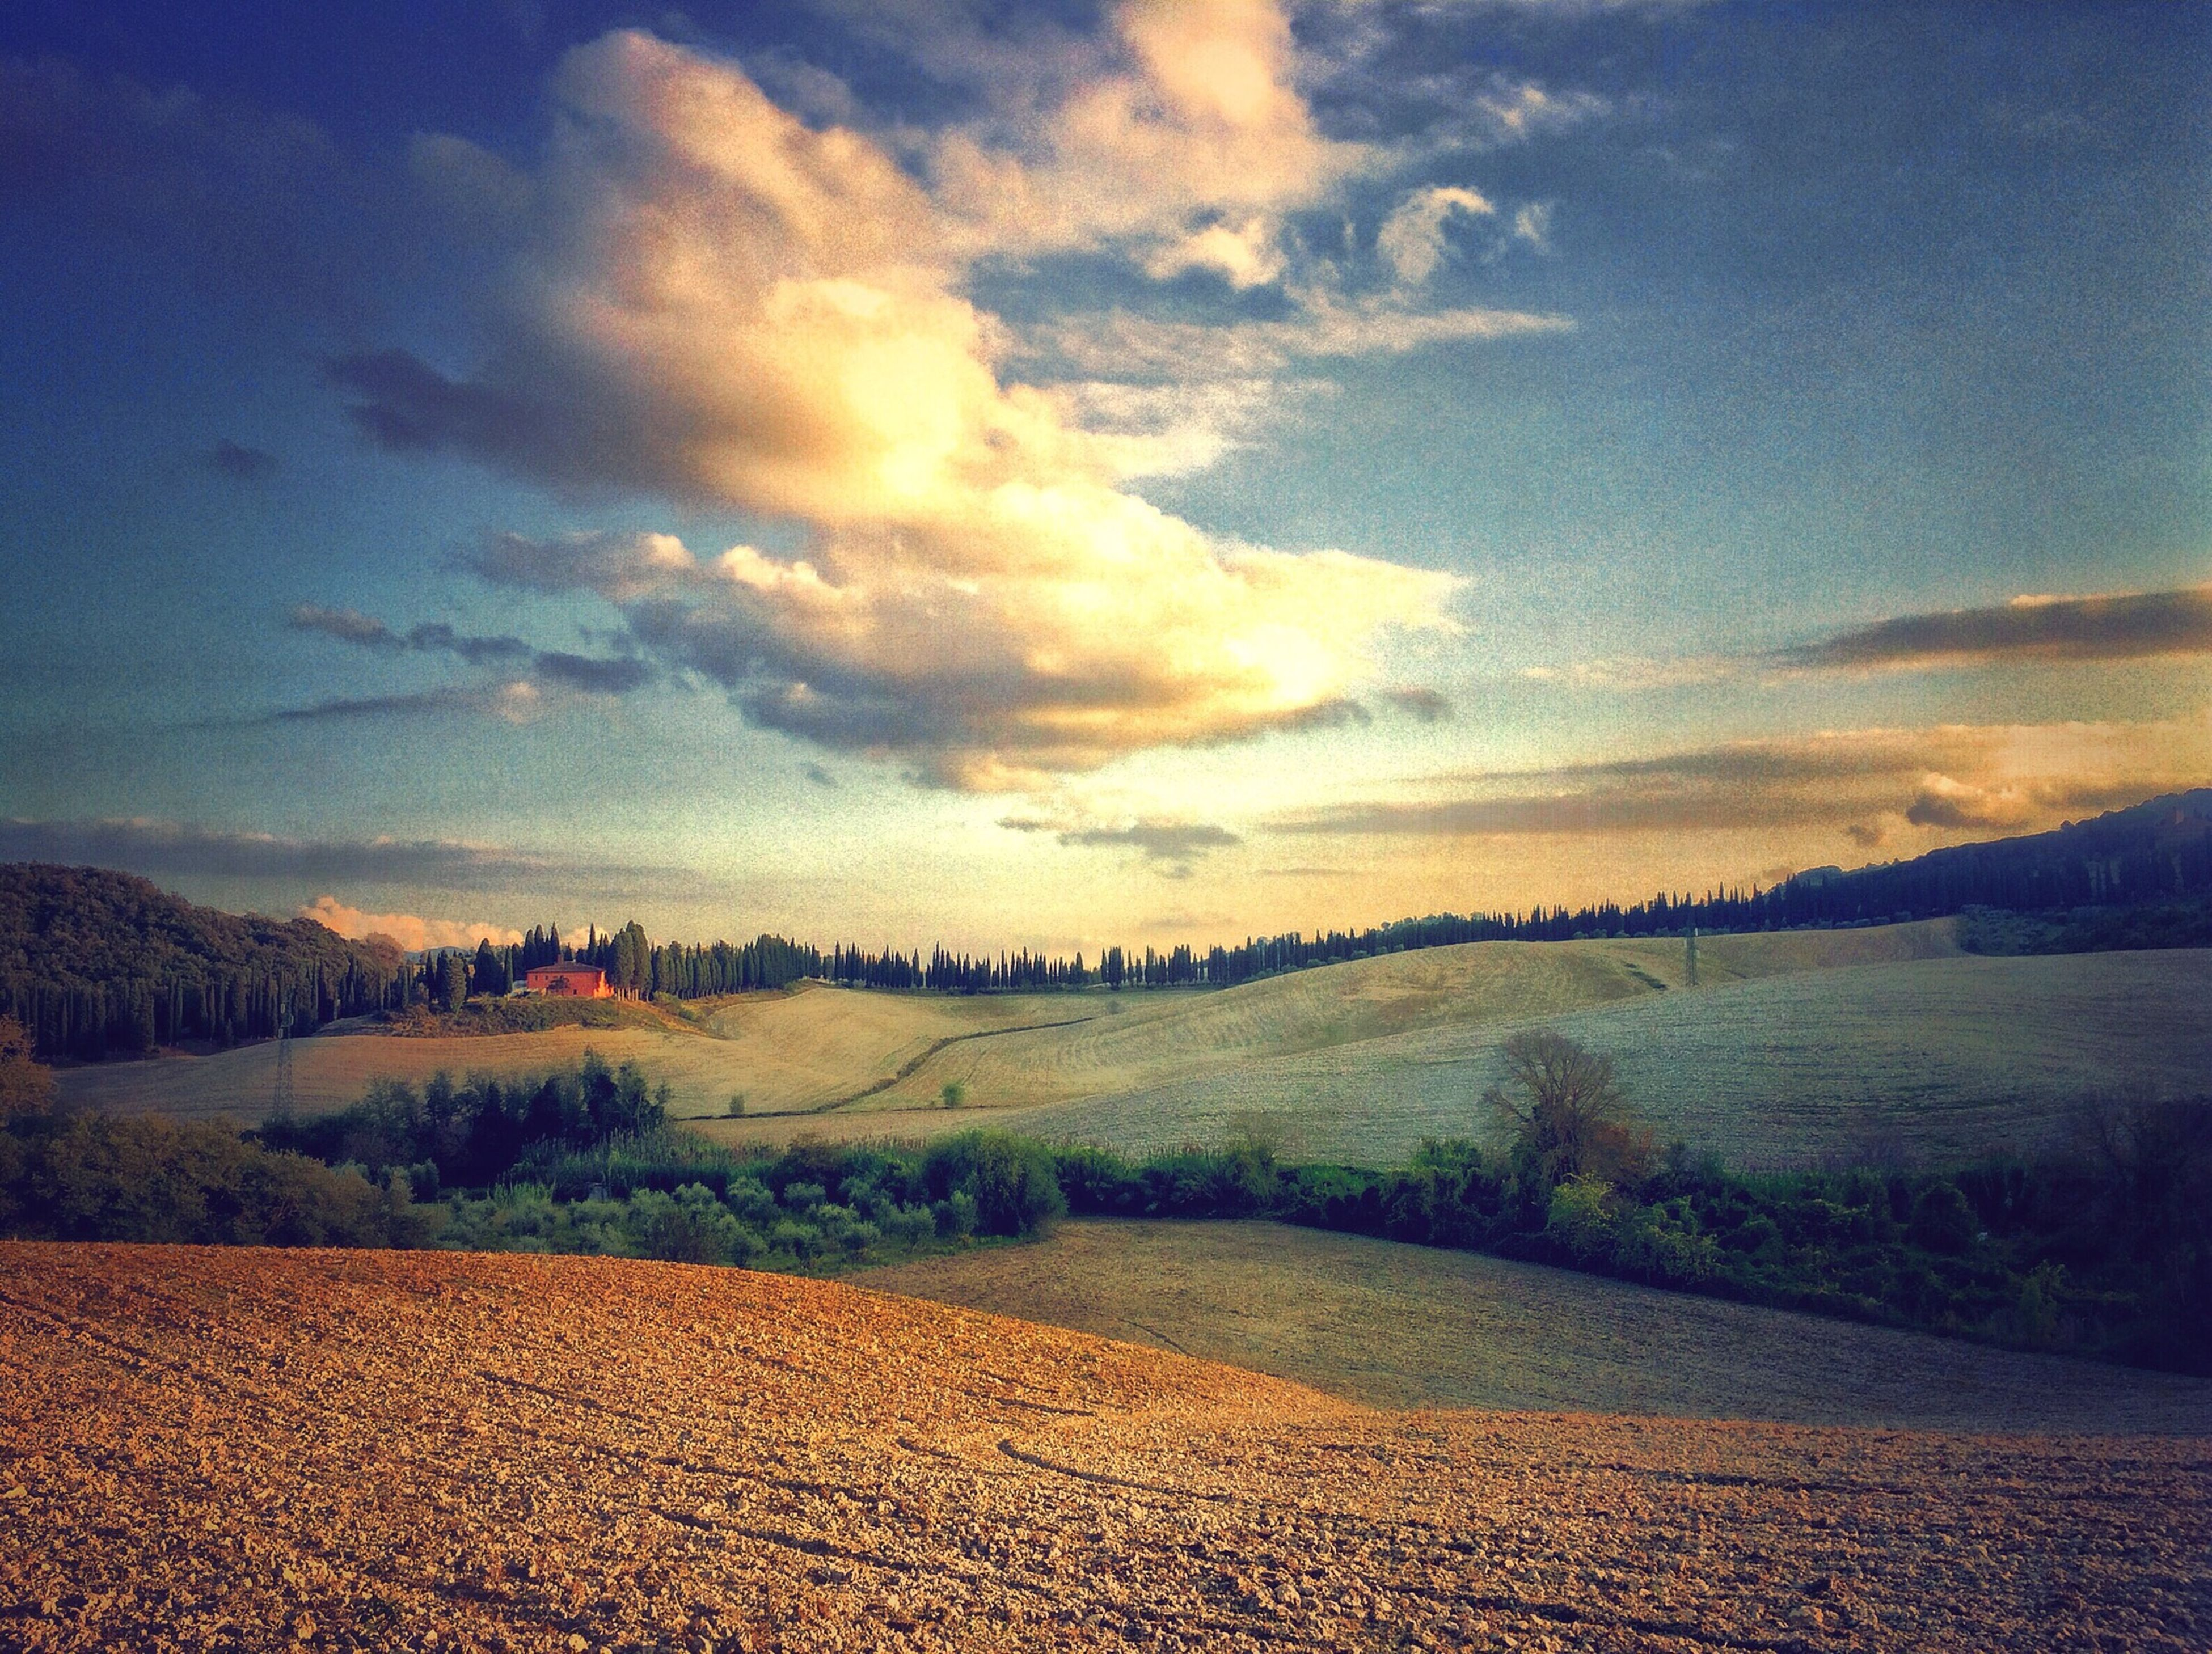 landscape, tranquil scene, sky, tranquility, scenics, beauty in nature, field, cloud - sky, nature, rural scene, agriculture, horizon over land, cloud, sunset, idyllic, cloudy, non-urban scene, remote, tree, outdoors